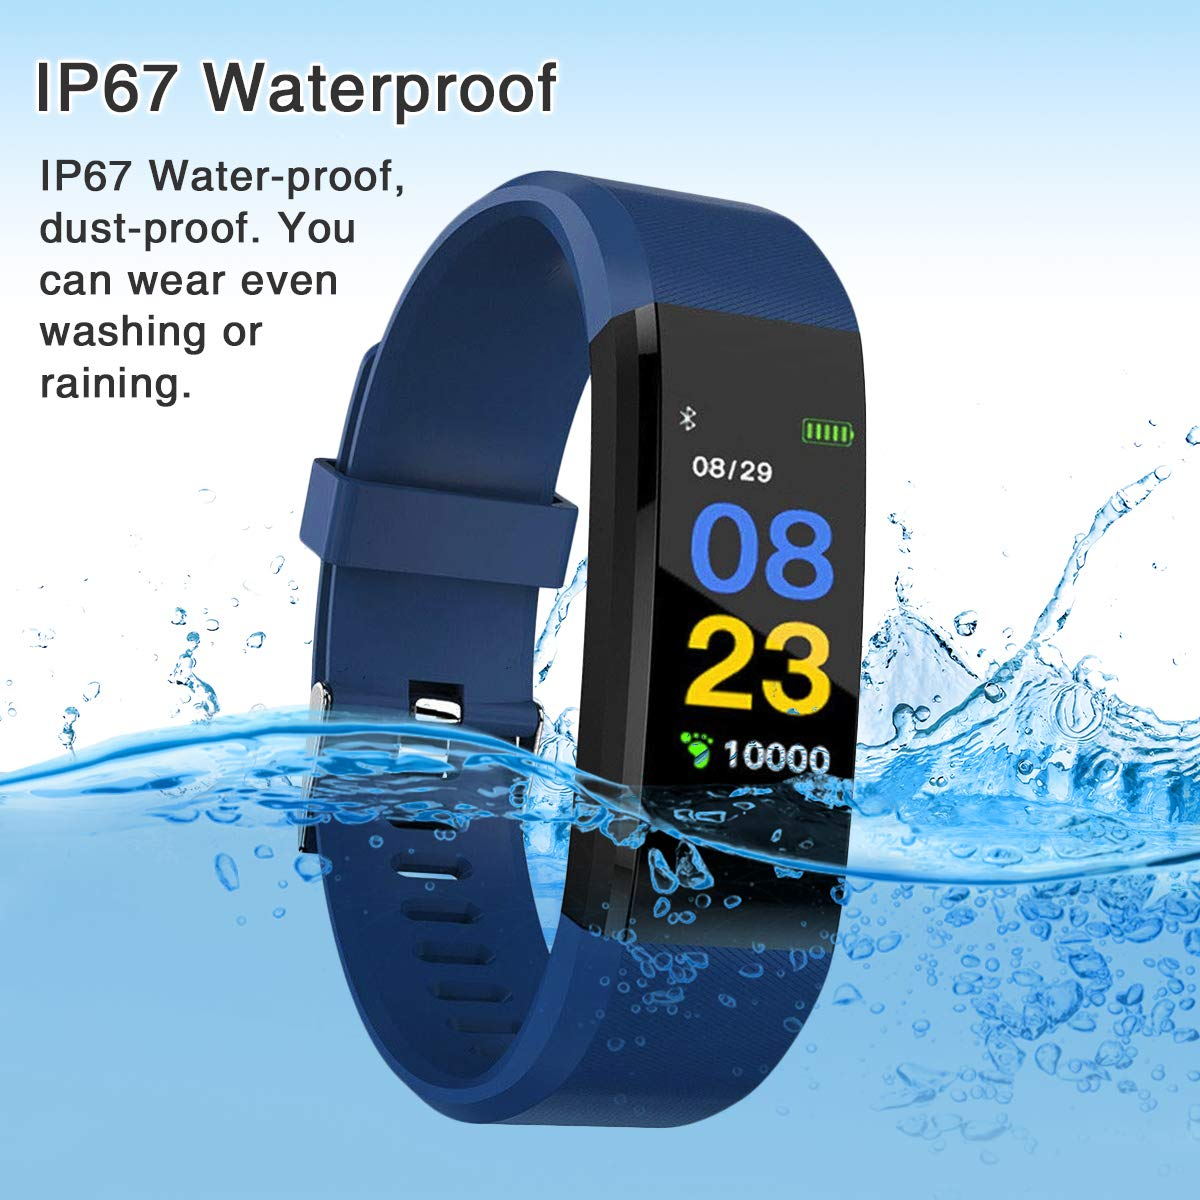 Burn-Rate Fitness Tracker Heart Rate Monitor - Smart Watches for Women & Men, Kids Color Smart Watch Fit Bracelet. Reloj Inteligente band Pedometer, Waterproof, Distance Activity bit for Android & iOS by Burn-Rate Fitness 115plus (Image #3)